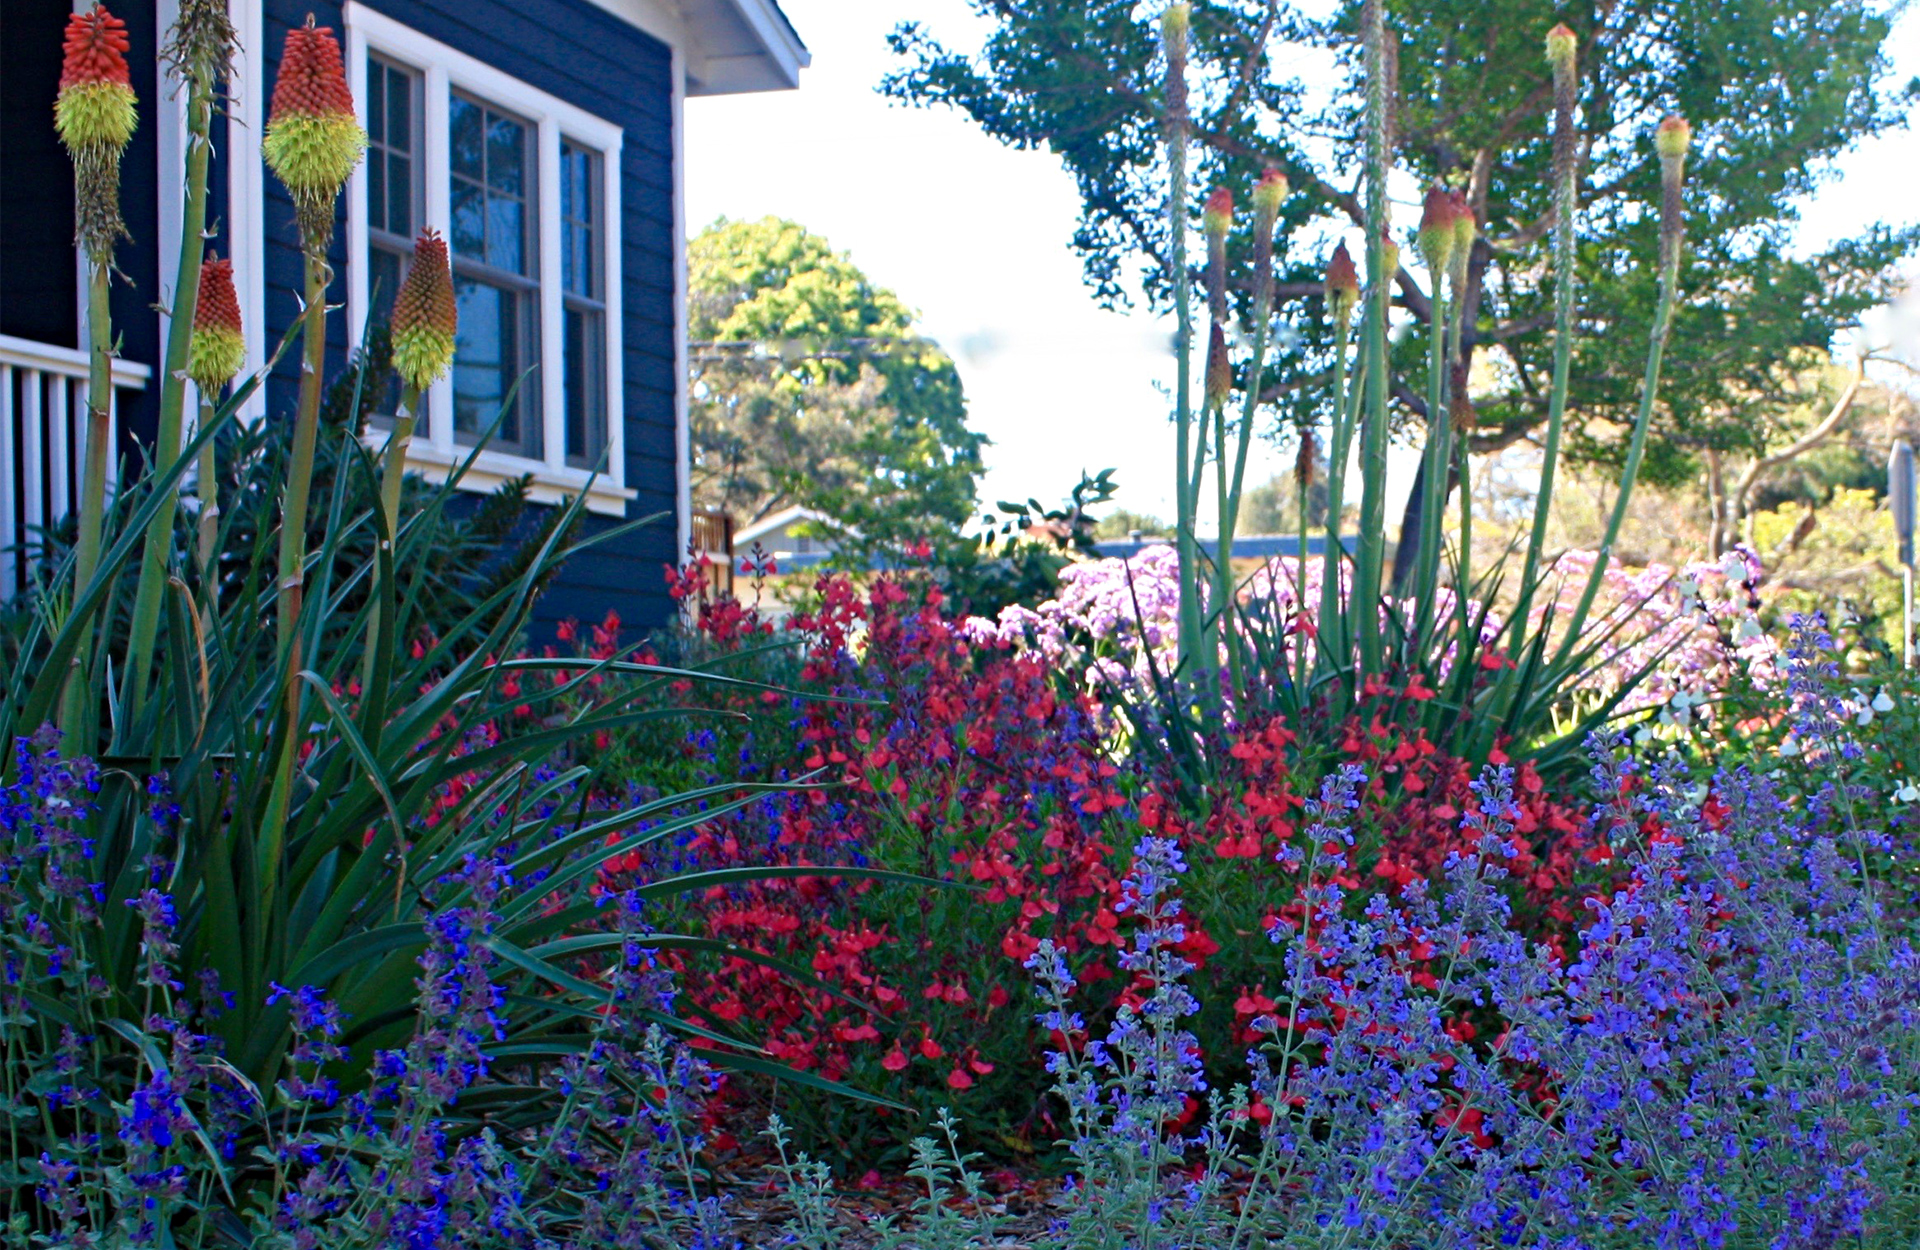 Colorful plants in a front yard